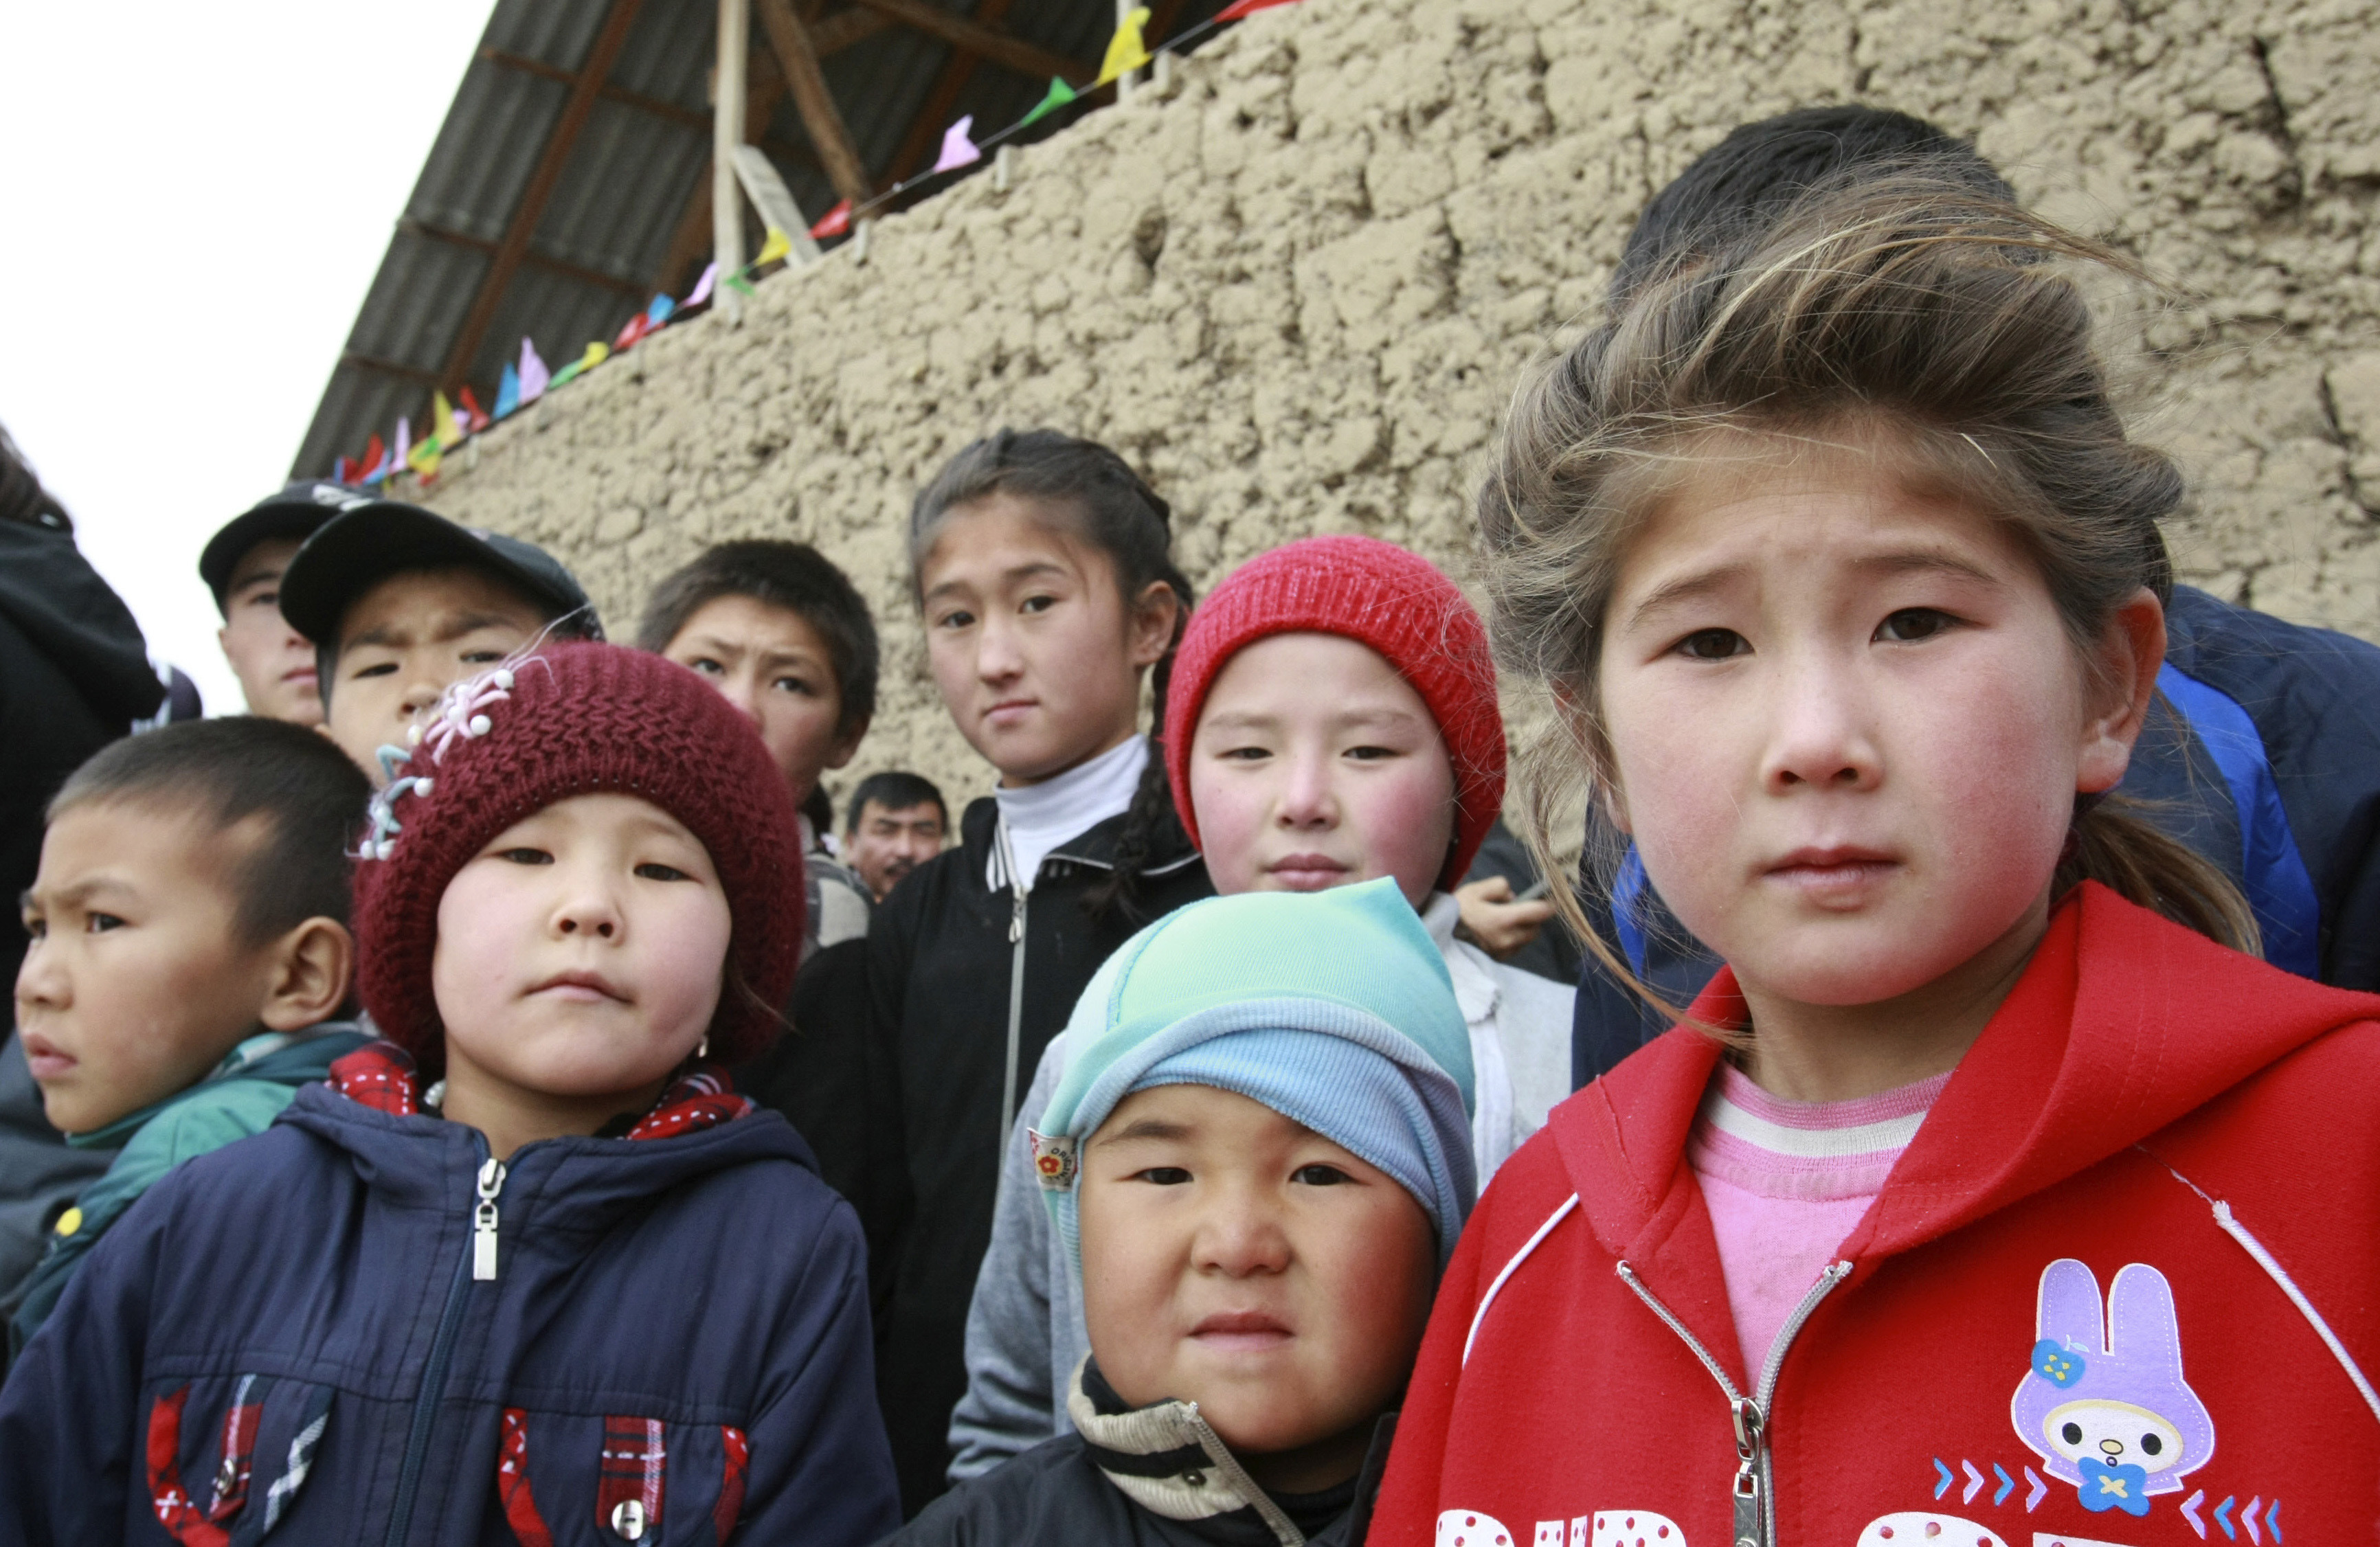 Children wait for a meeting with Kyrgyzstan's Prime Minister and presidential candidate Almazbek Atambayev, who is taking part in his election campaign, in Ak-Zhar district, on the outskirts of the capital Bishkek October 27, 2011. Twenty candidates will vie for the presidency of Kyrgyzstan in an October 30 election -- the final stage of constitutional reforms designed to turn the country into Central Asia's first parliamentary republic.